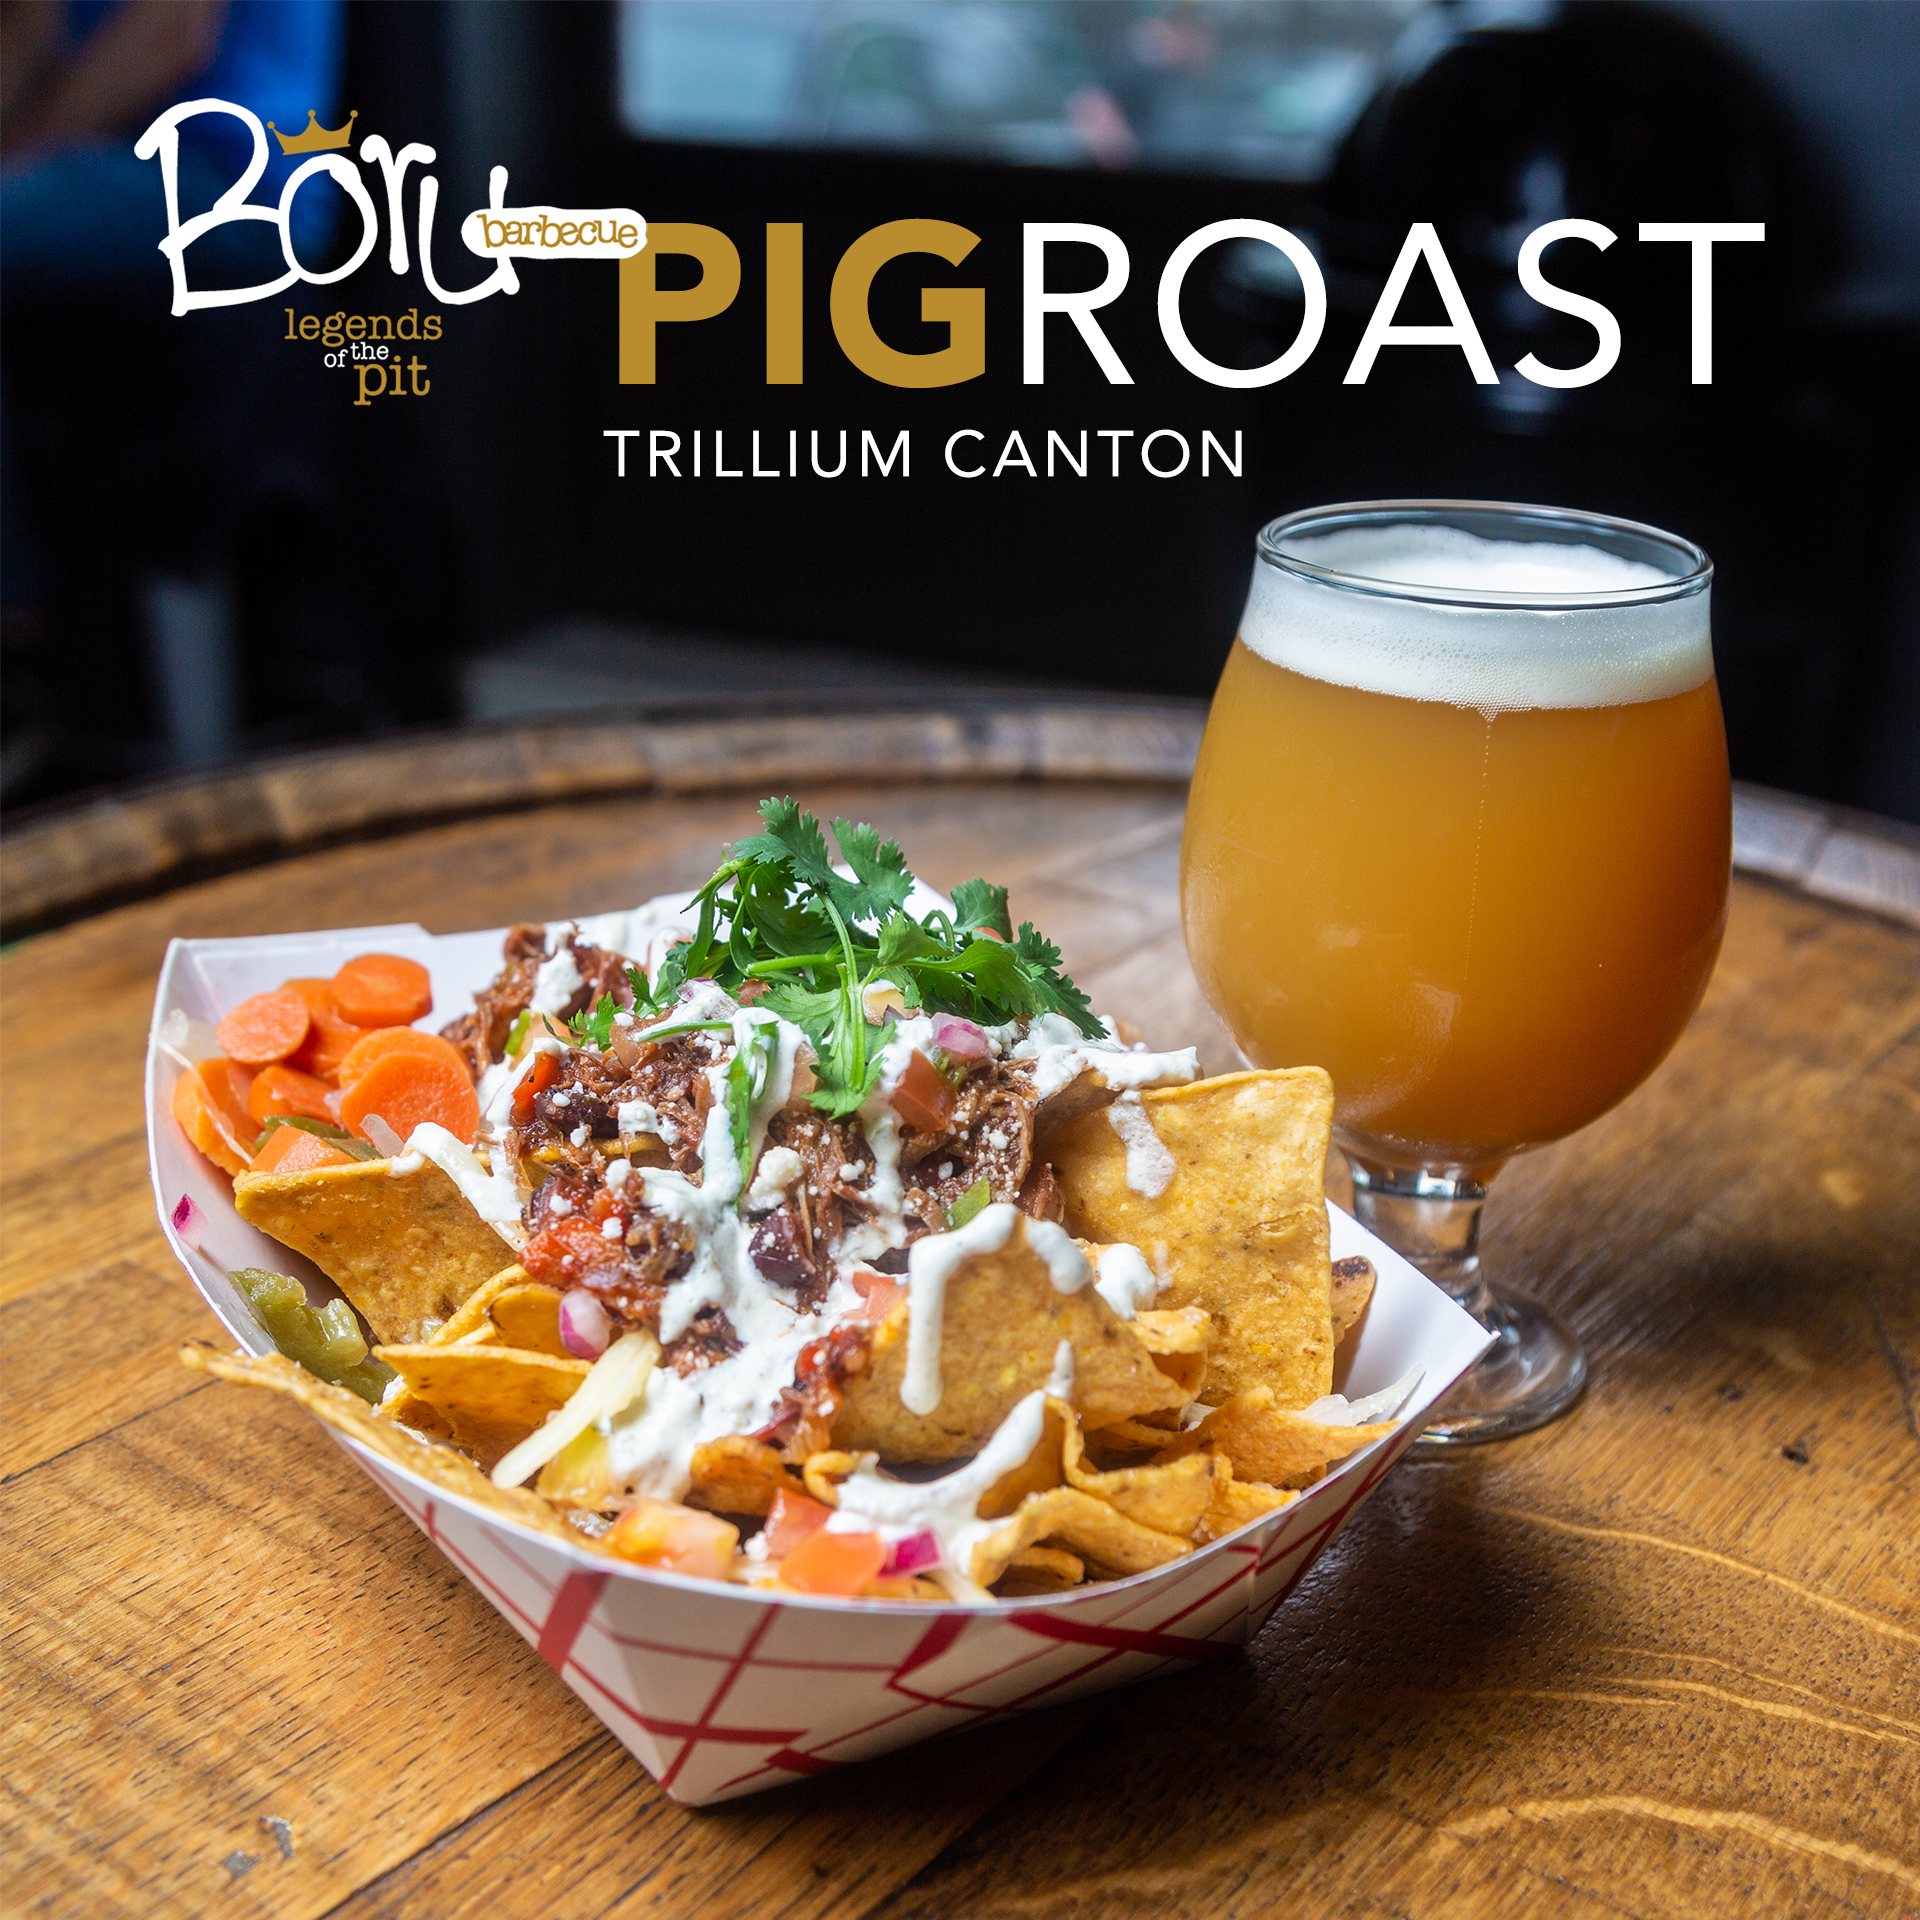 On Friday May 24th Padraic from Boru BBQ will be on the Canton patio smoking a whole pig to celebrate the warm weather and patio season! Boru will be here from 5-10pm, grab a beer and come hungry!  Their menu for the night:   Slow Smoked Whole Hog from Blackbird farm  Pulled pork served on a soft roll with tangy coleslaw, our signature pickles and barbecue sauce   Sides:   - Sweet Potato Salad  - Honey and Jalapeno Cornbread  - Coleslaw  - Garden Salad  - Condiment Bar  An assortment of BBQ sauces and pickles to customize your plate